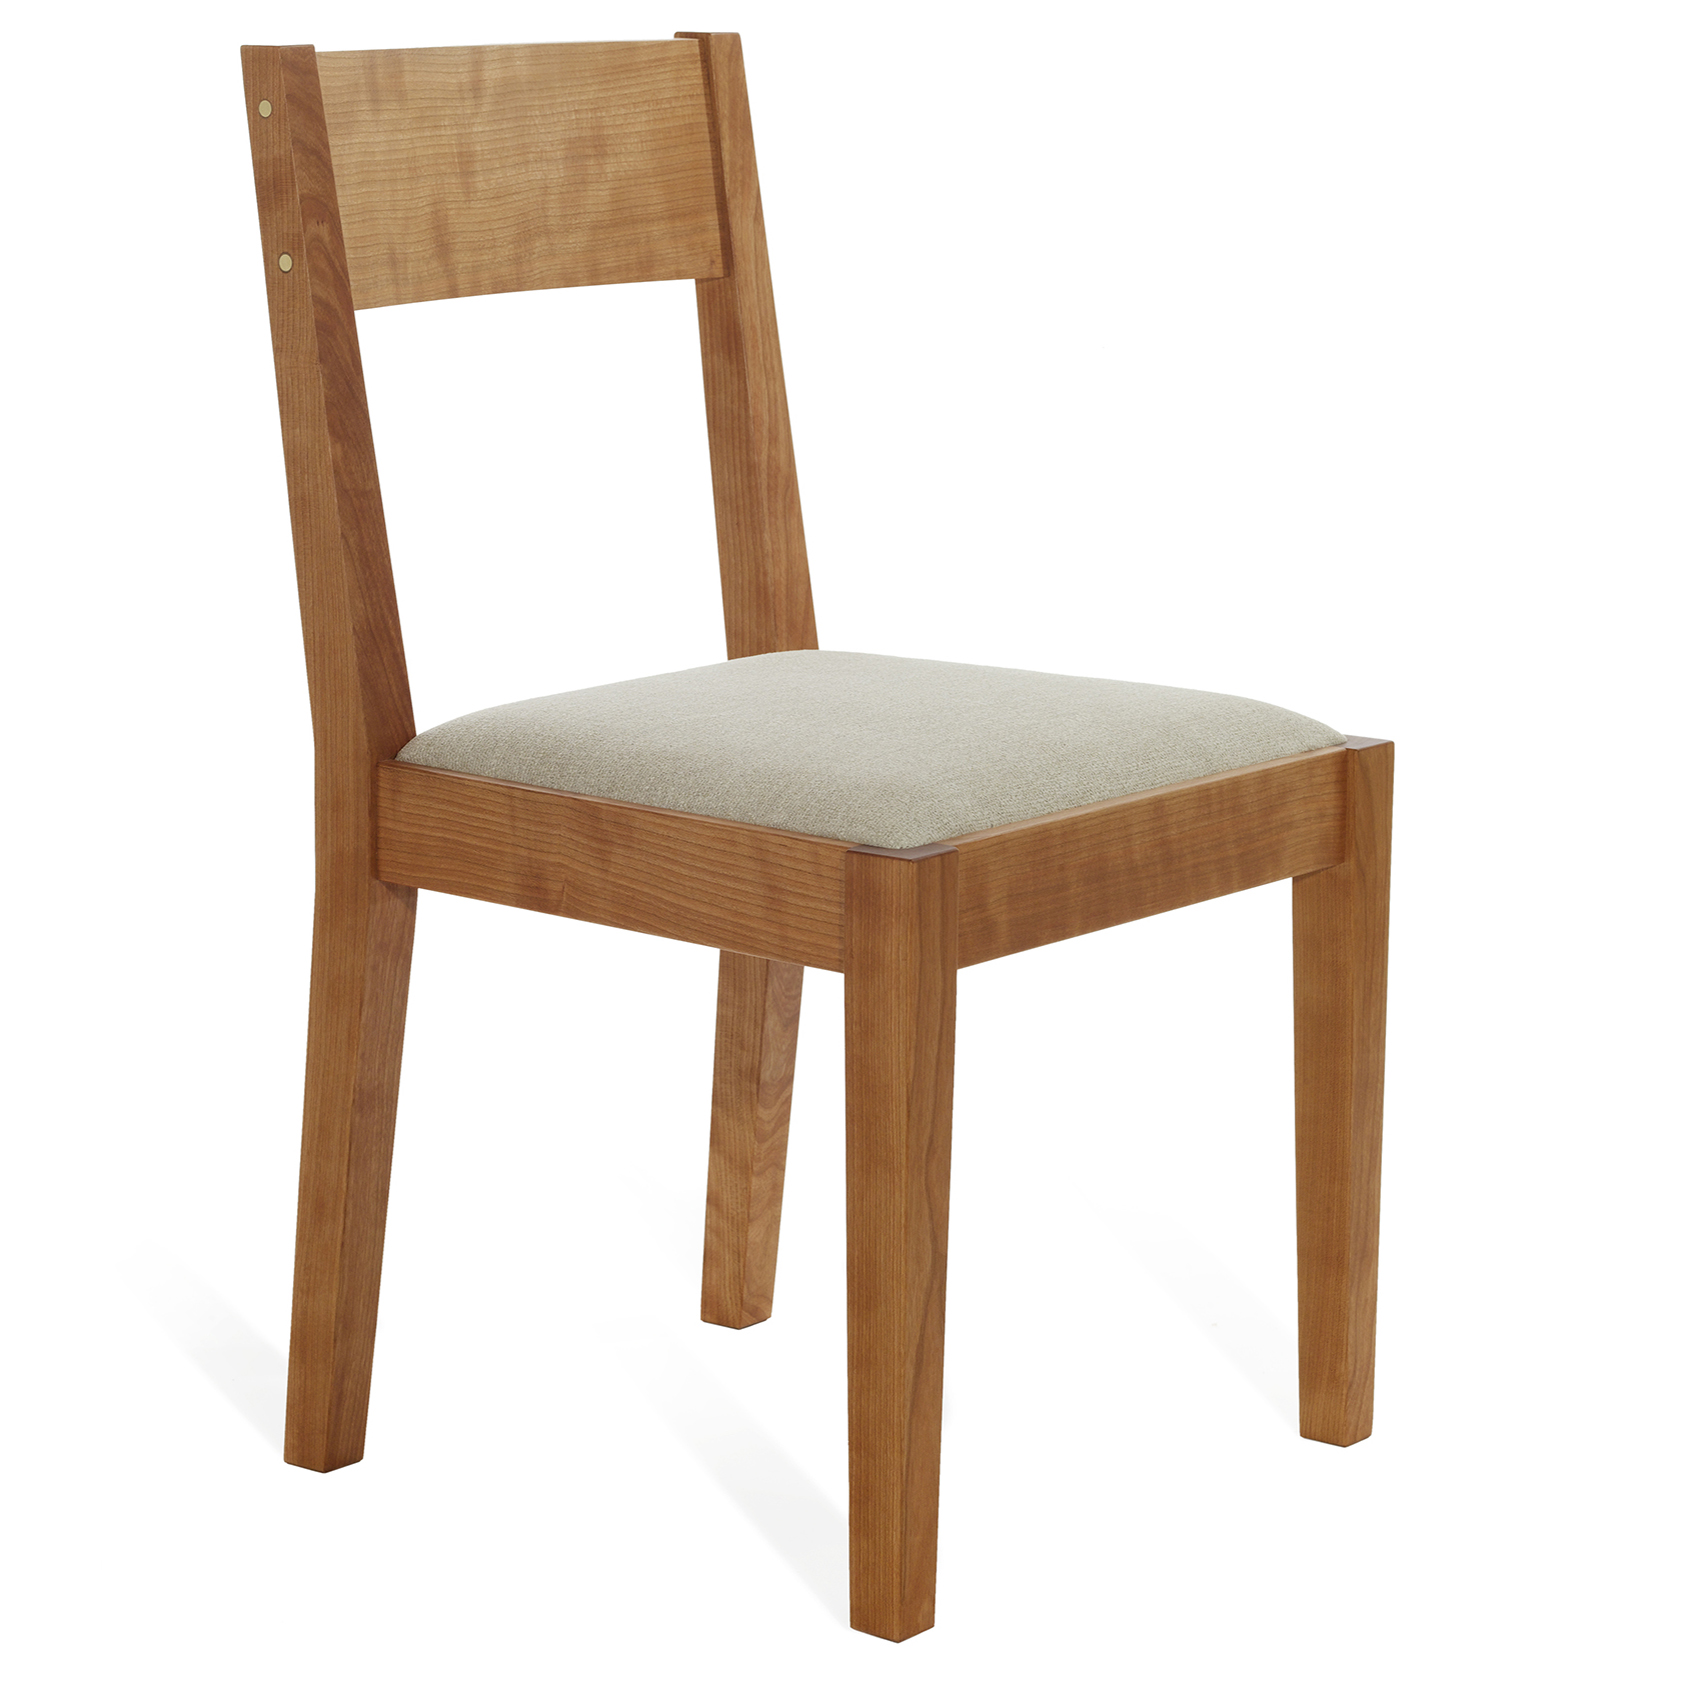 JETMORE CHAIR